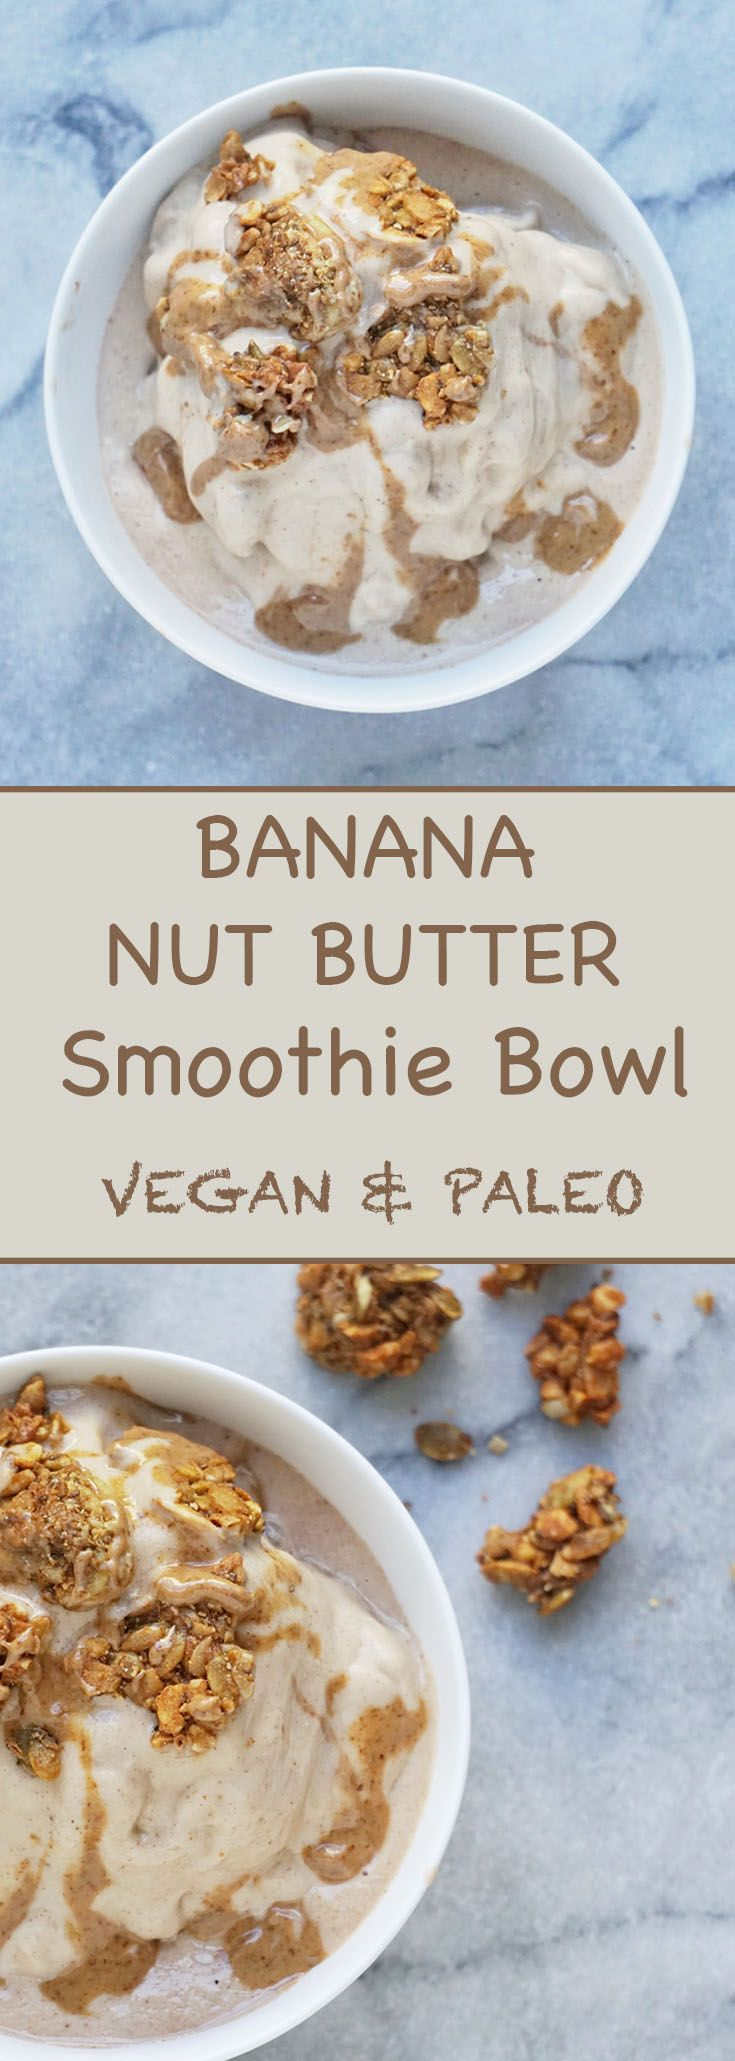 This vegan and paleo smoothie bowl is packed with healthy fat and tastes like you're eating a decadent dessert for breakfast